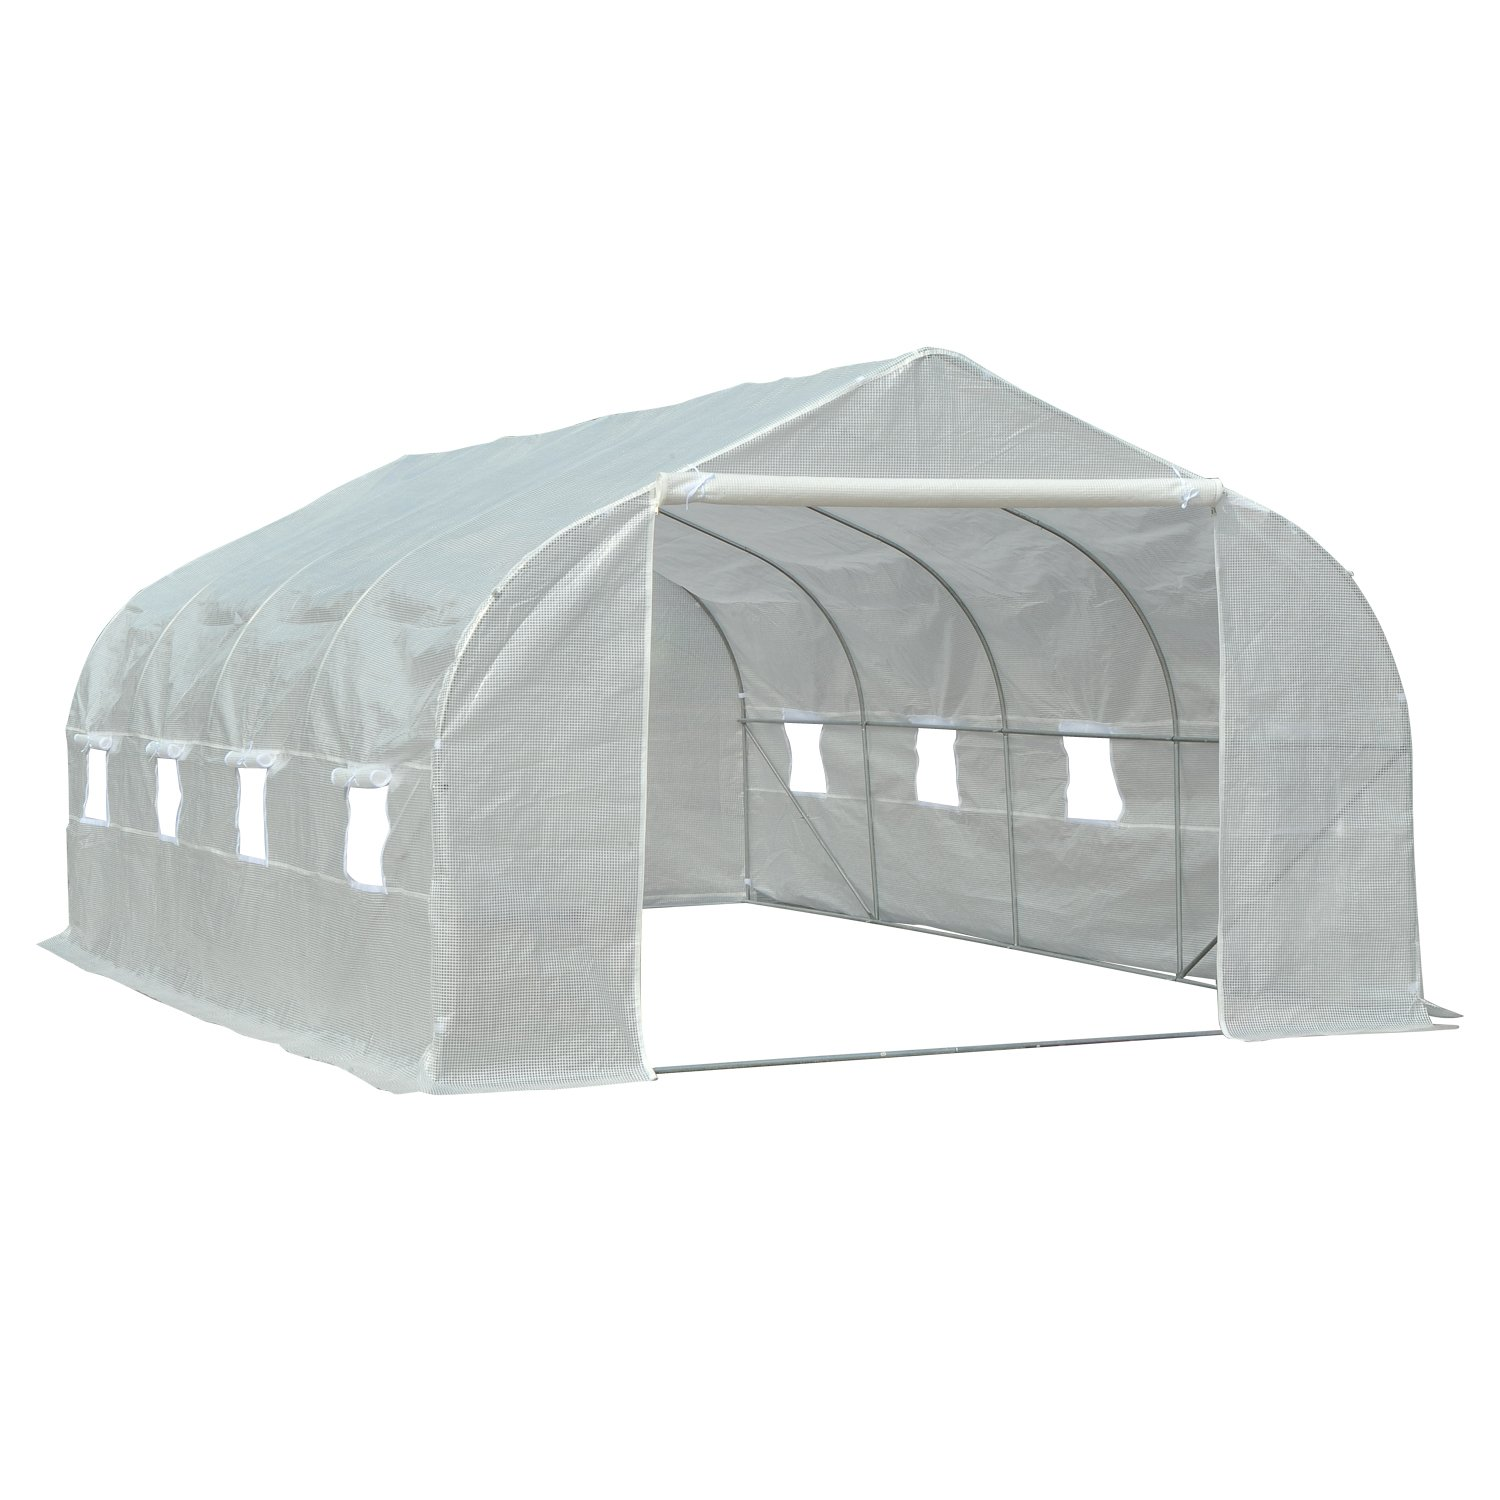 Outsunny 19.5' Portable Greenhouse Large Walk-In Garden Hot House - White